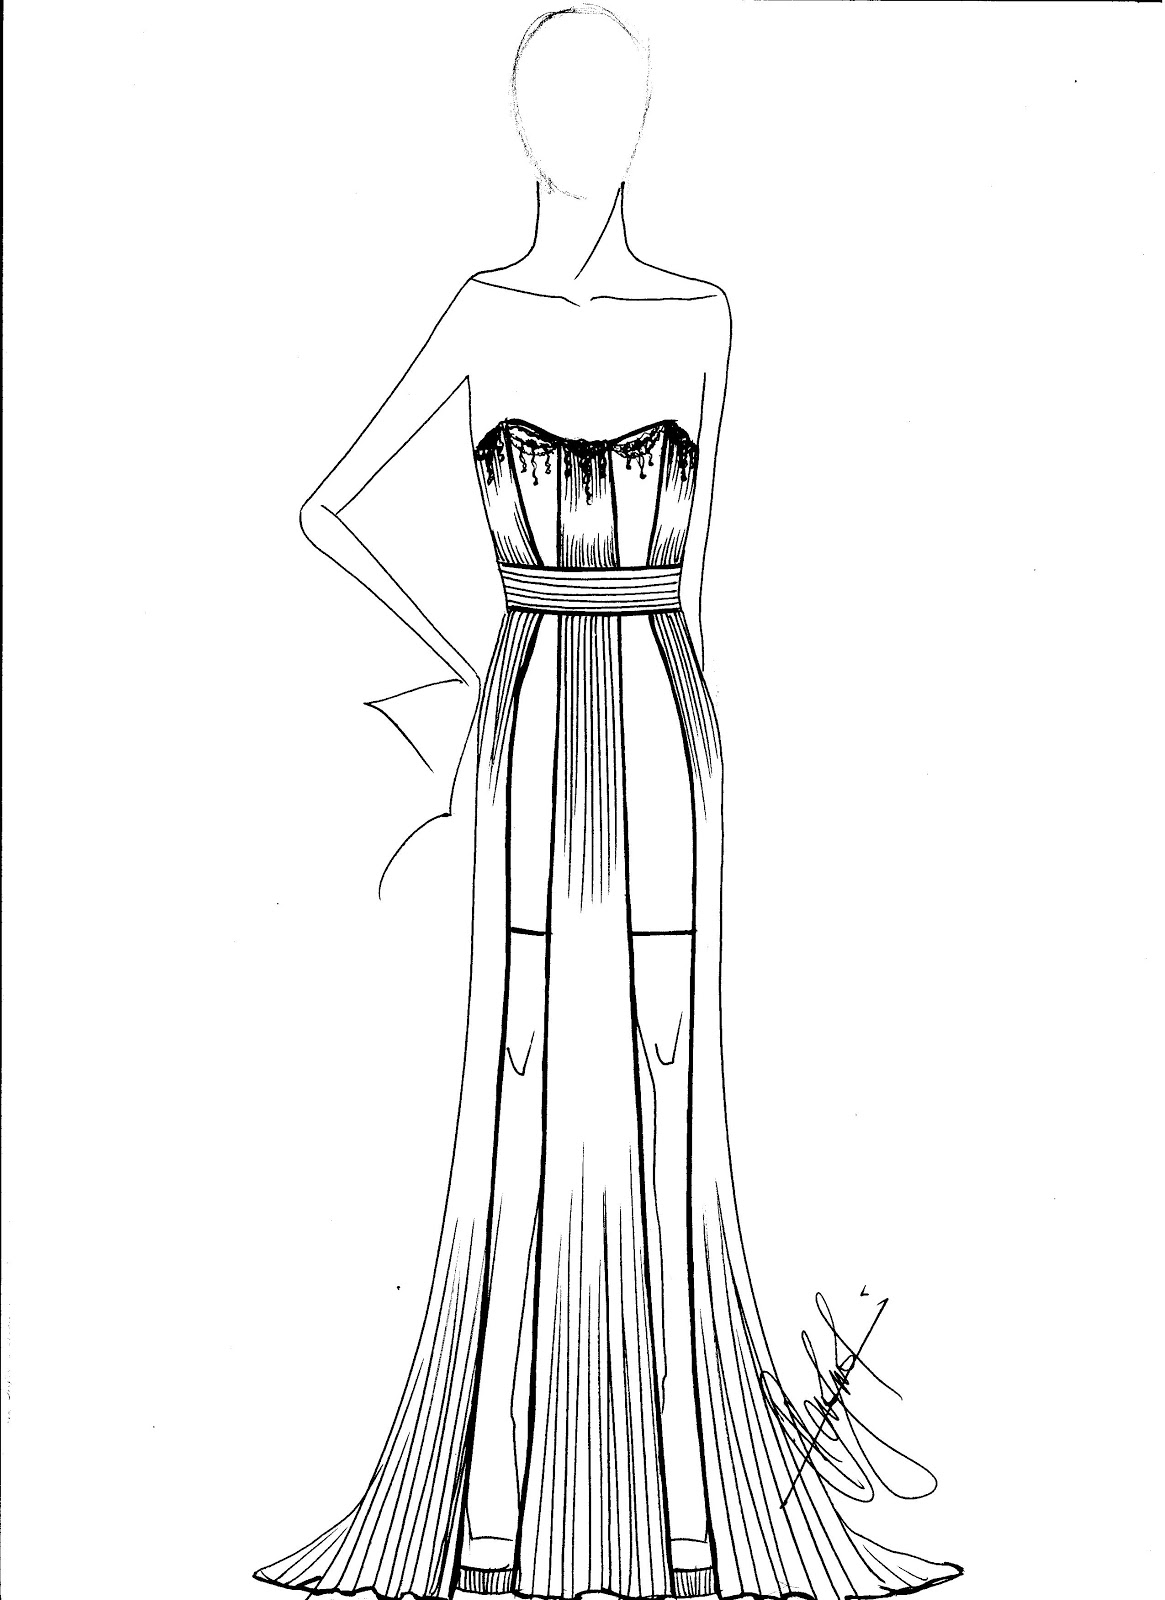 Fashion Sketches Template Cake Ideas and Designs